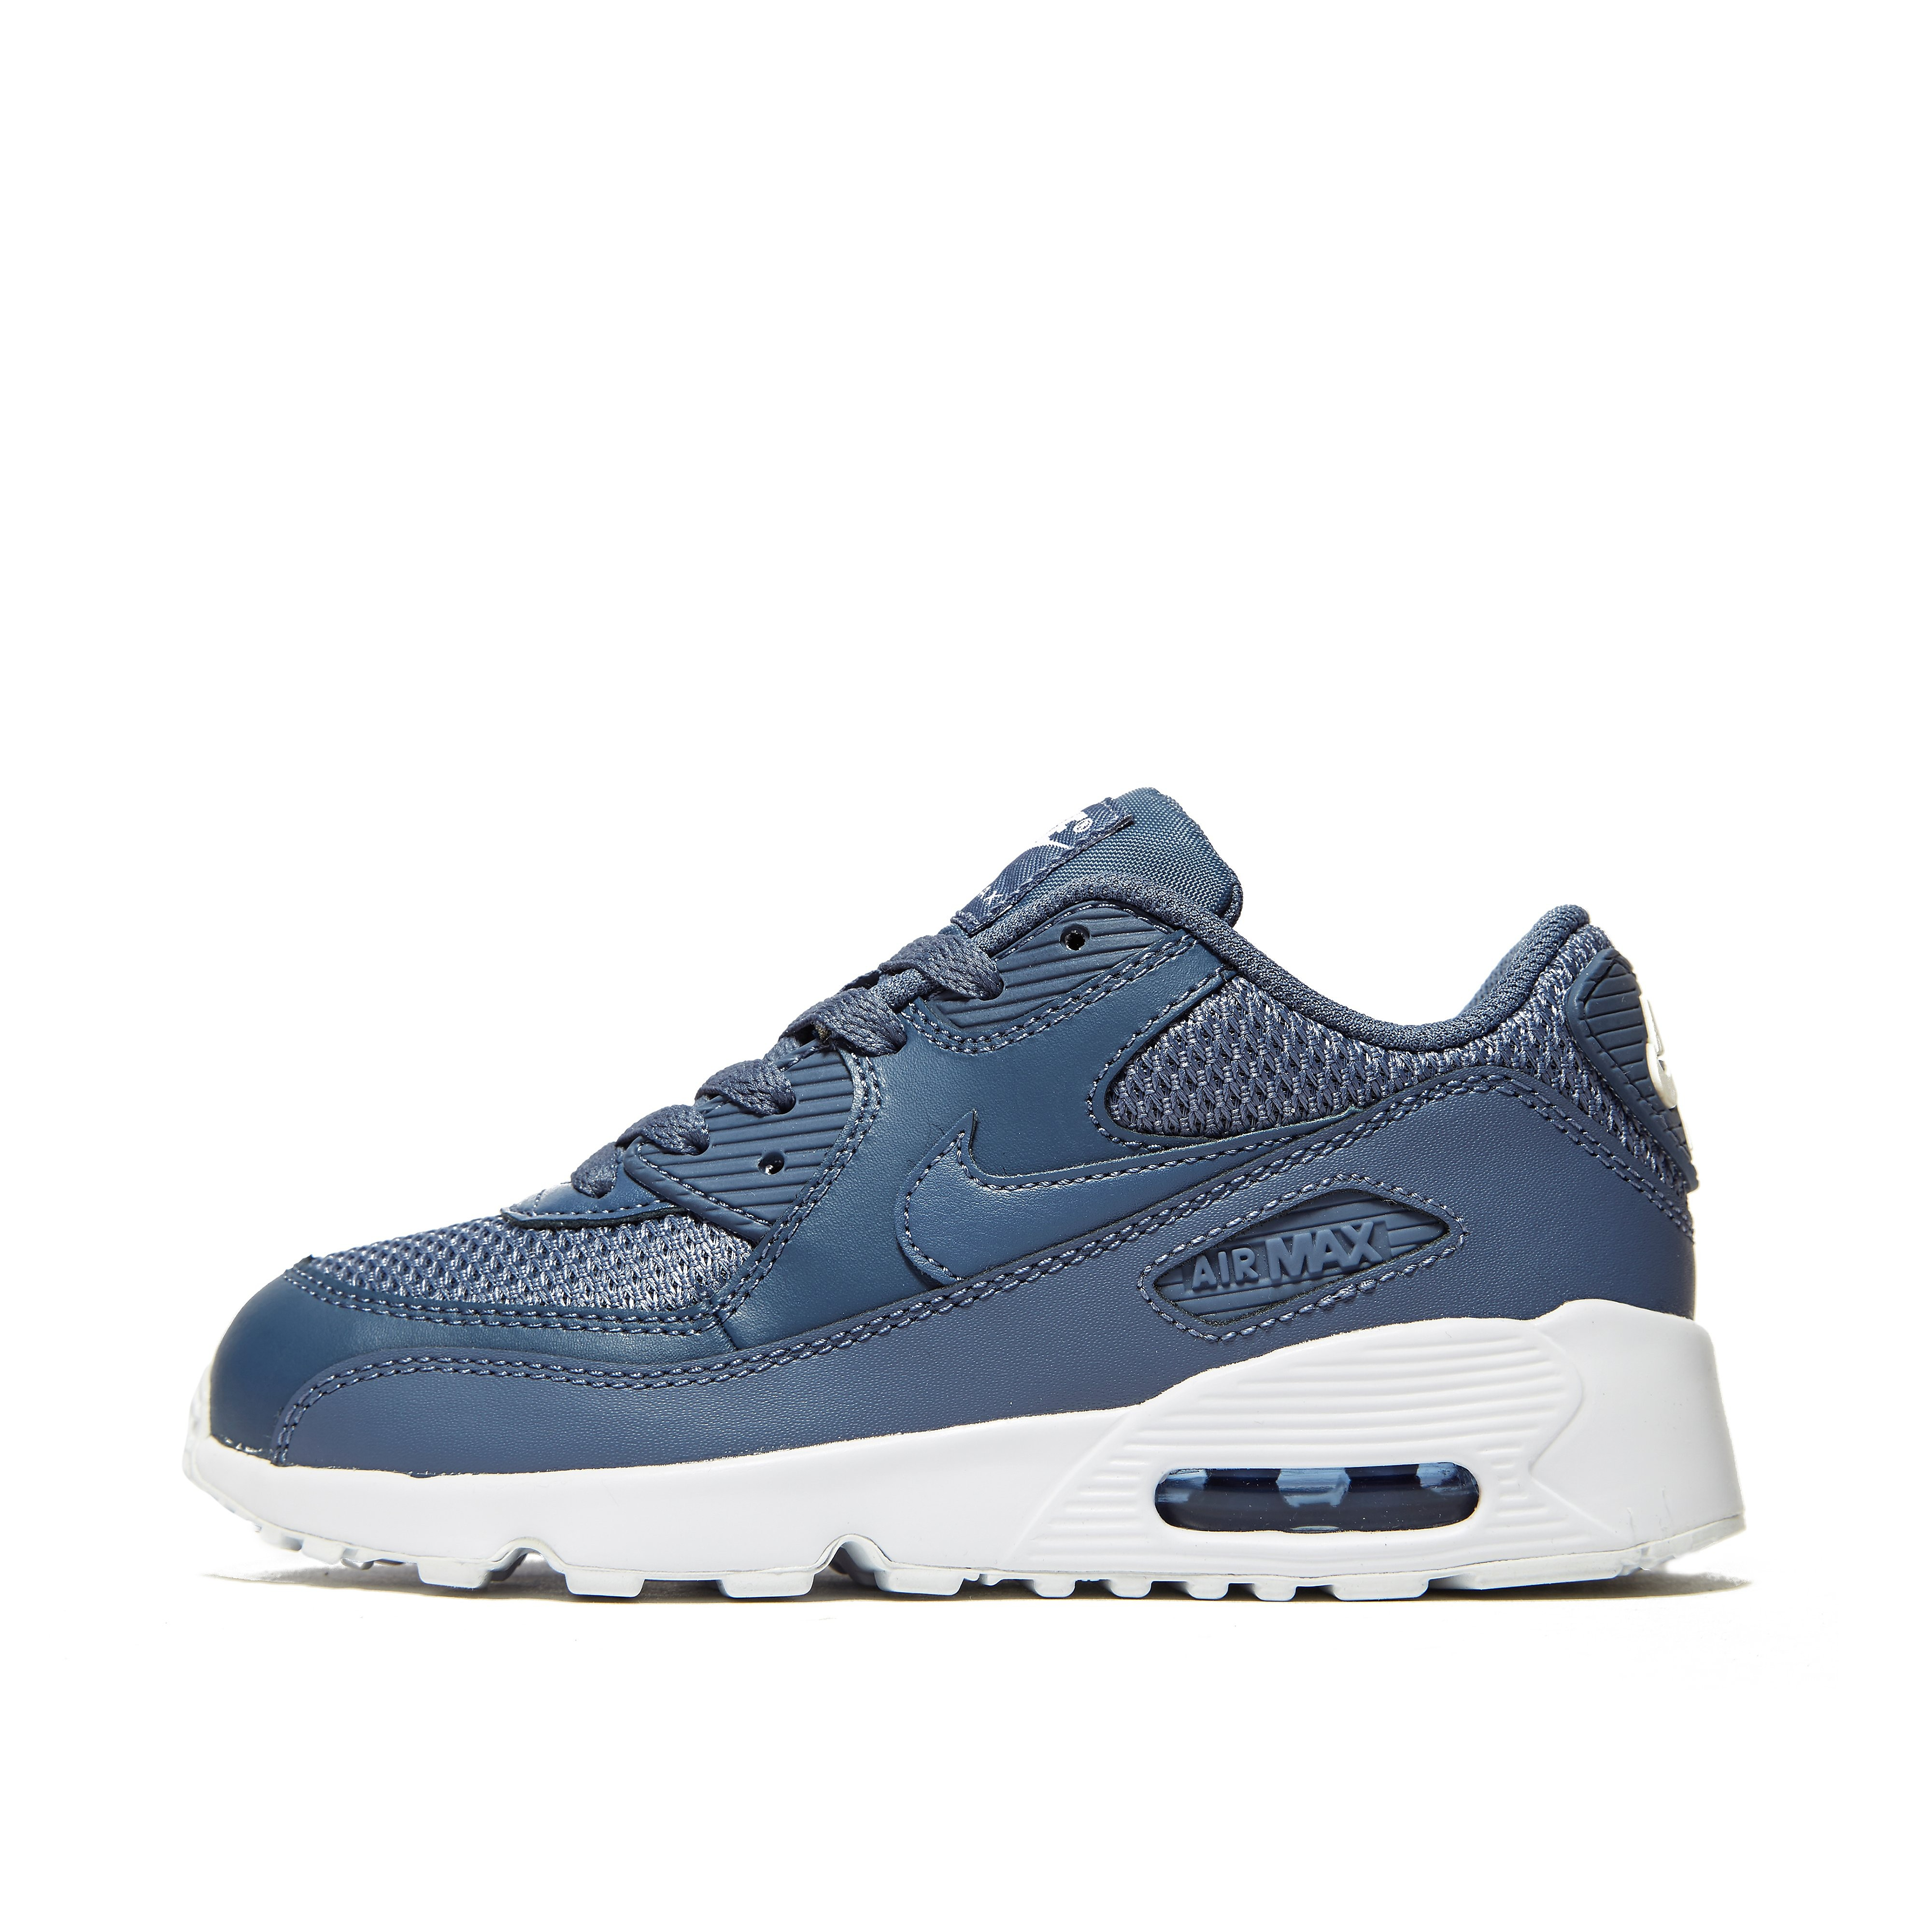 Air Max 90 Rose Nike Chaussures Taille 35 Hommes mn8Y0Ifm